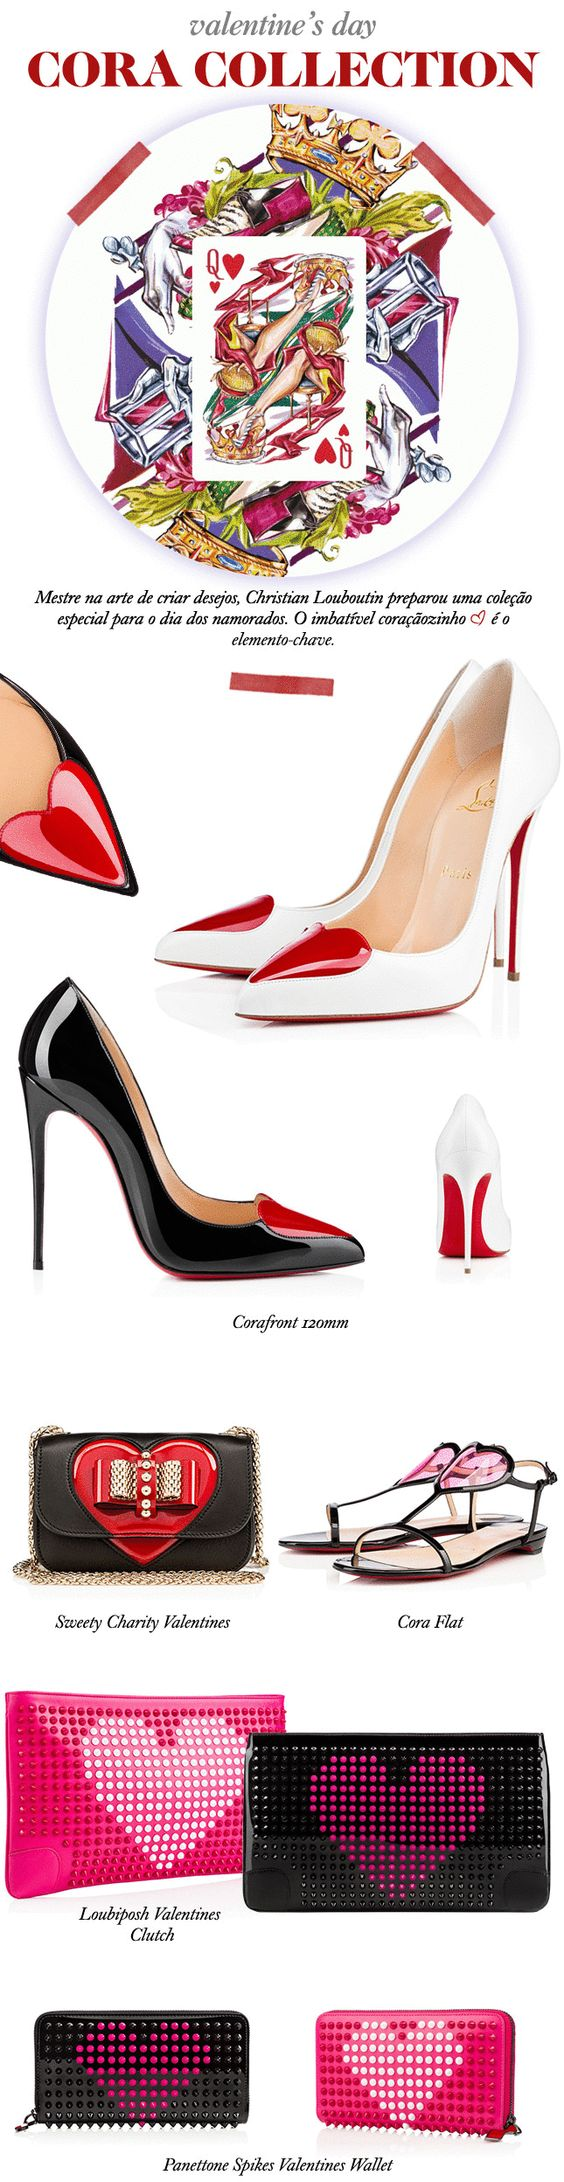 Louboutin Cora Collection 		   por Mônica Araújo | Oh My Closet! 		   		   - http://modatrade.com.br/louboutin-cora-collection